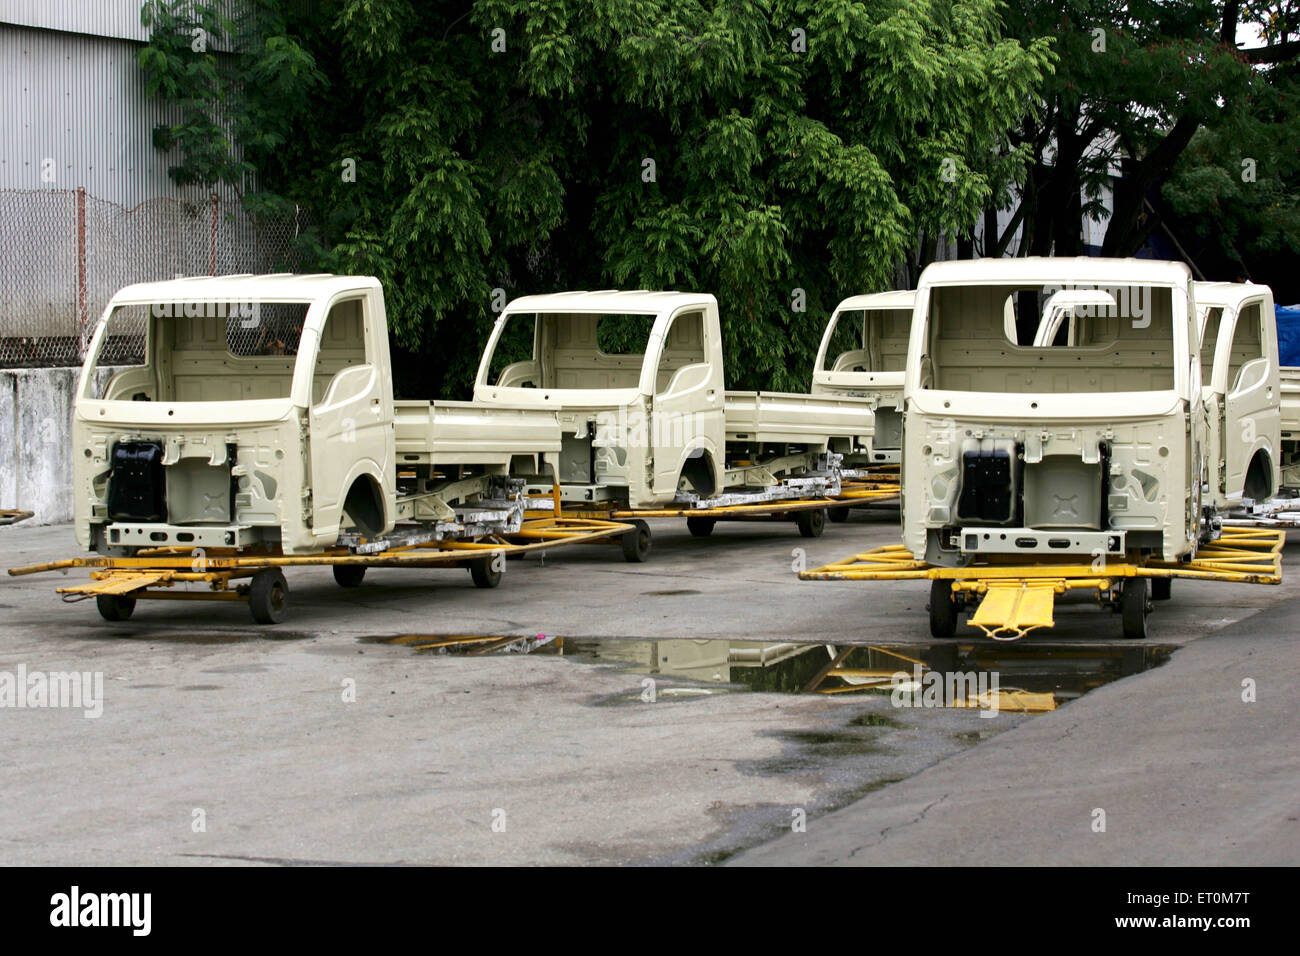 Bodies of Tata motors range mini matador Tata Ace commercial vehicle workshop Tata motors plant ; Pimpri Pune - Stock Image